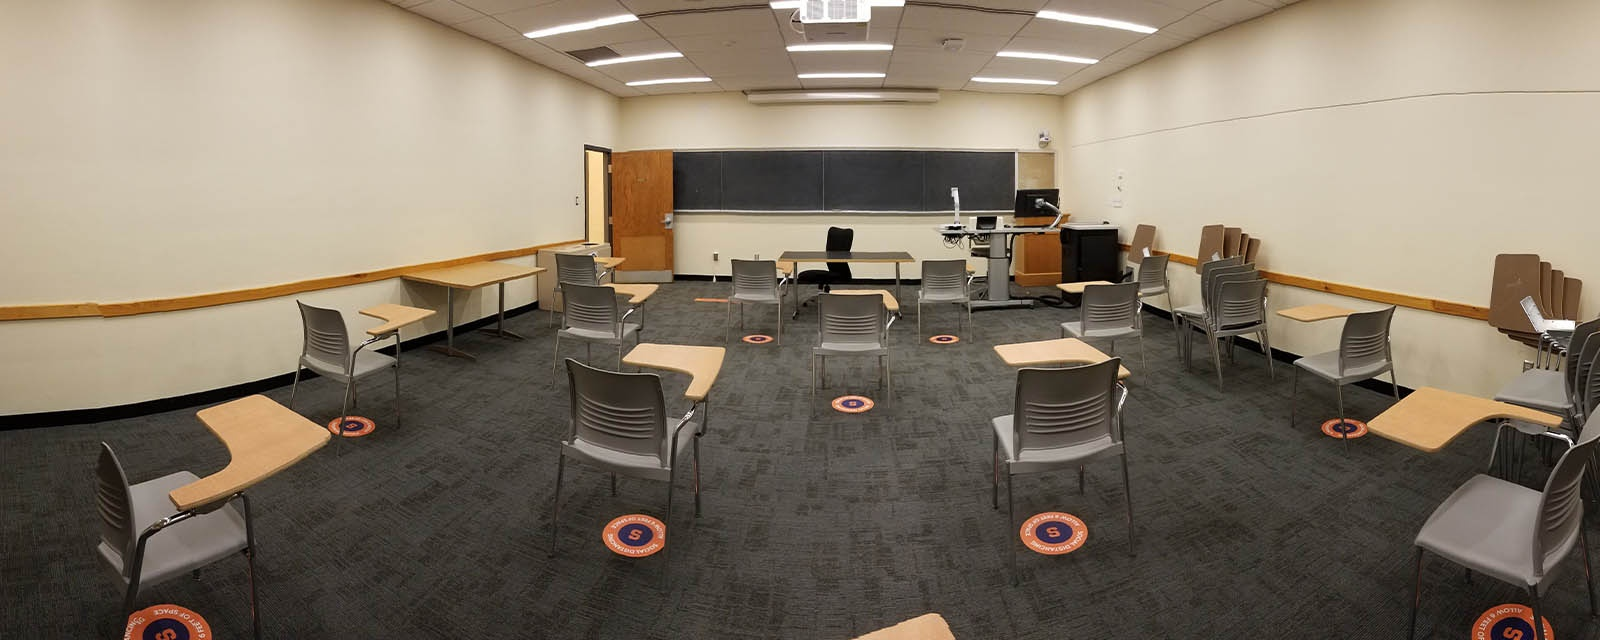 Panorama HBC 323A from back of room to front of room, moveable chairs, teaching station front left